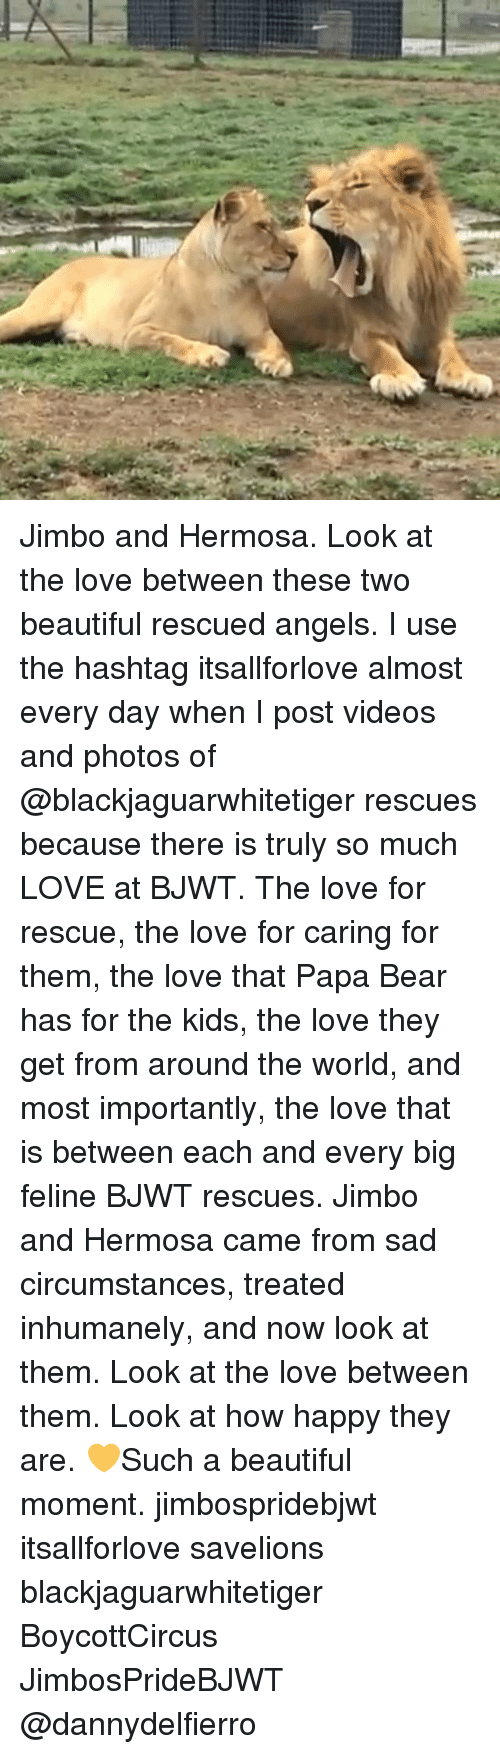 Beautiful, Love, and Memes: Jimbo and Hermosa. Look at the love between these two beautiful rescued angels. I use the hashtag itsallforlove almost every day when I post videos and photos of @blackjaguarwhitetiger rescues because there is truly so much LOVE at BJWT. The love for rescue, the love for caring for them, the love that Papa Bear has for the kids, the love they get from around the world, and most importantly, the love that is between each and every big feline BJWT rescues. Jimbo and Hermosa came from sad circumstances, treated inhumanely, and now look at them. Look at the love between them. Look at how happy they are. 💛Such a beautiful moment. jimbospridebjwt itsallforlove savelions blackjaguarwhitetiger BoycottCircus JimbosPrideBJWT @dannydelfierro